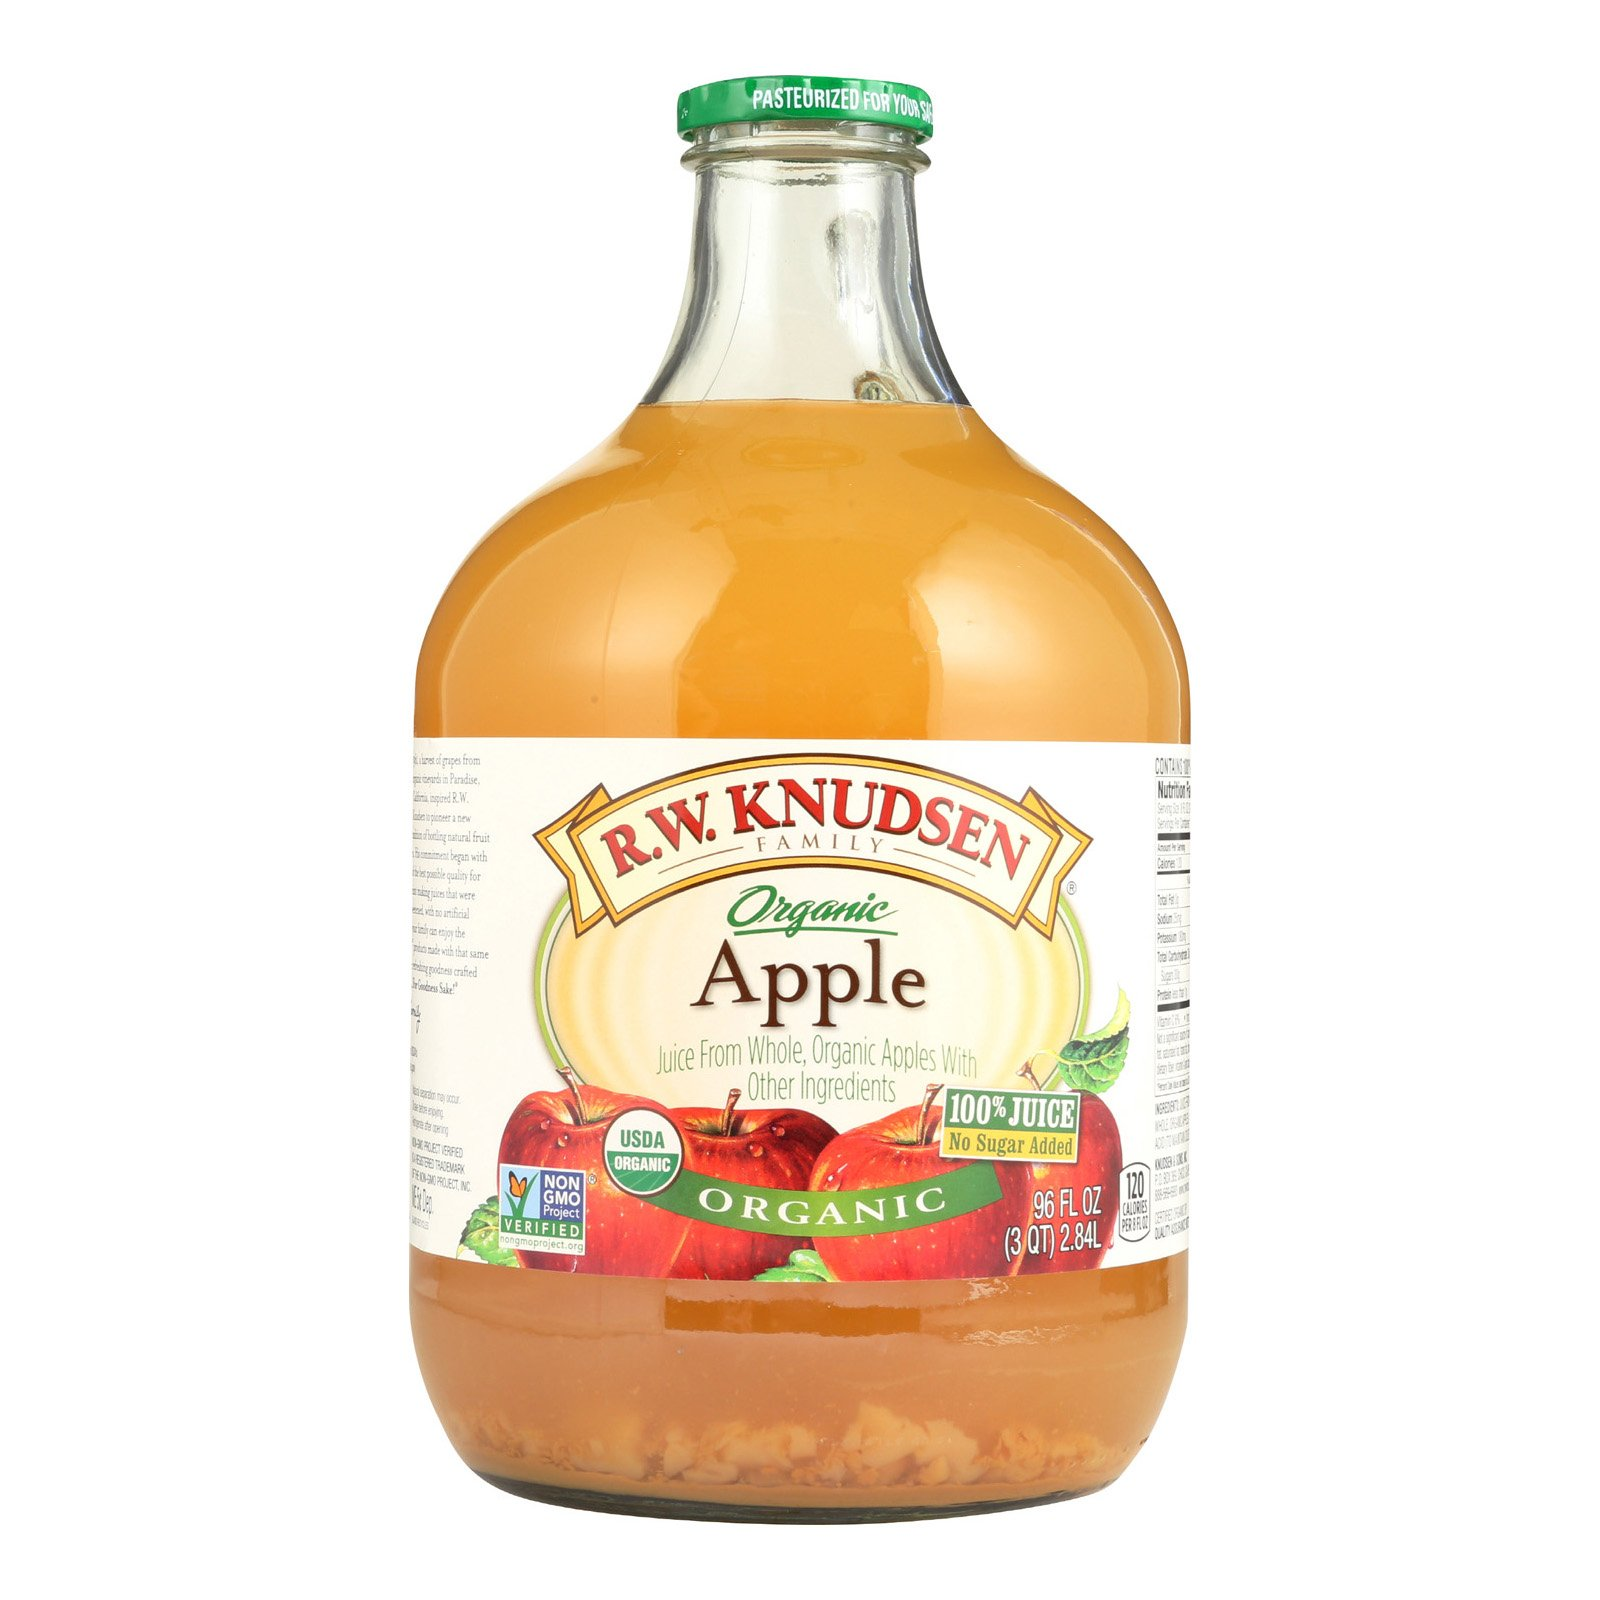 R.W. Knudsen Organic Juice - Apple - Case of 6 - 96 Fl oz.